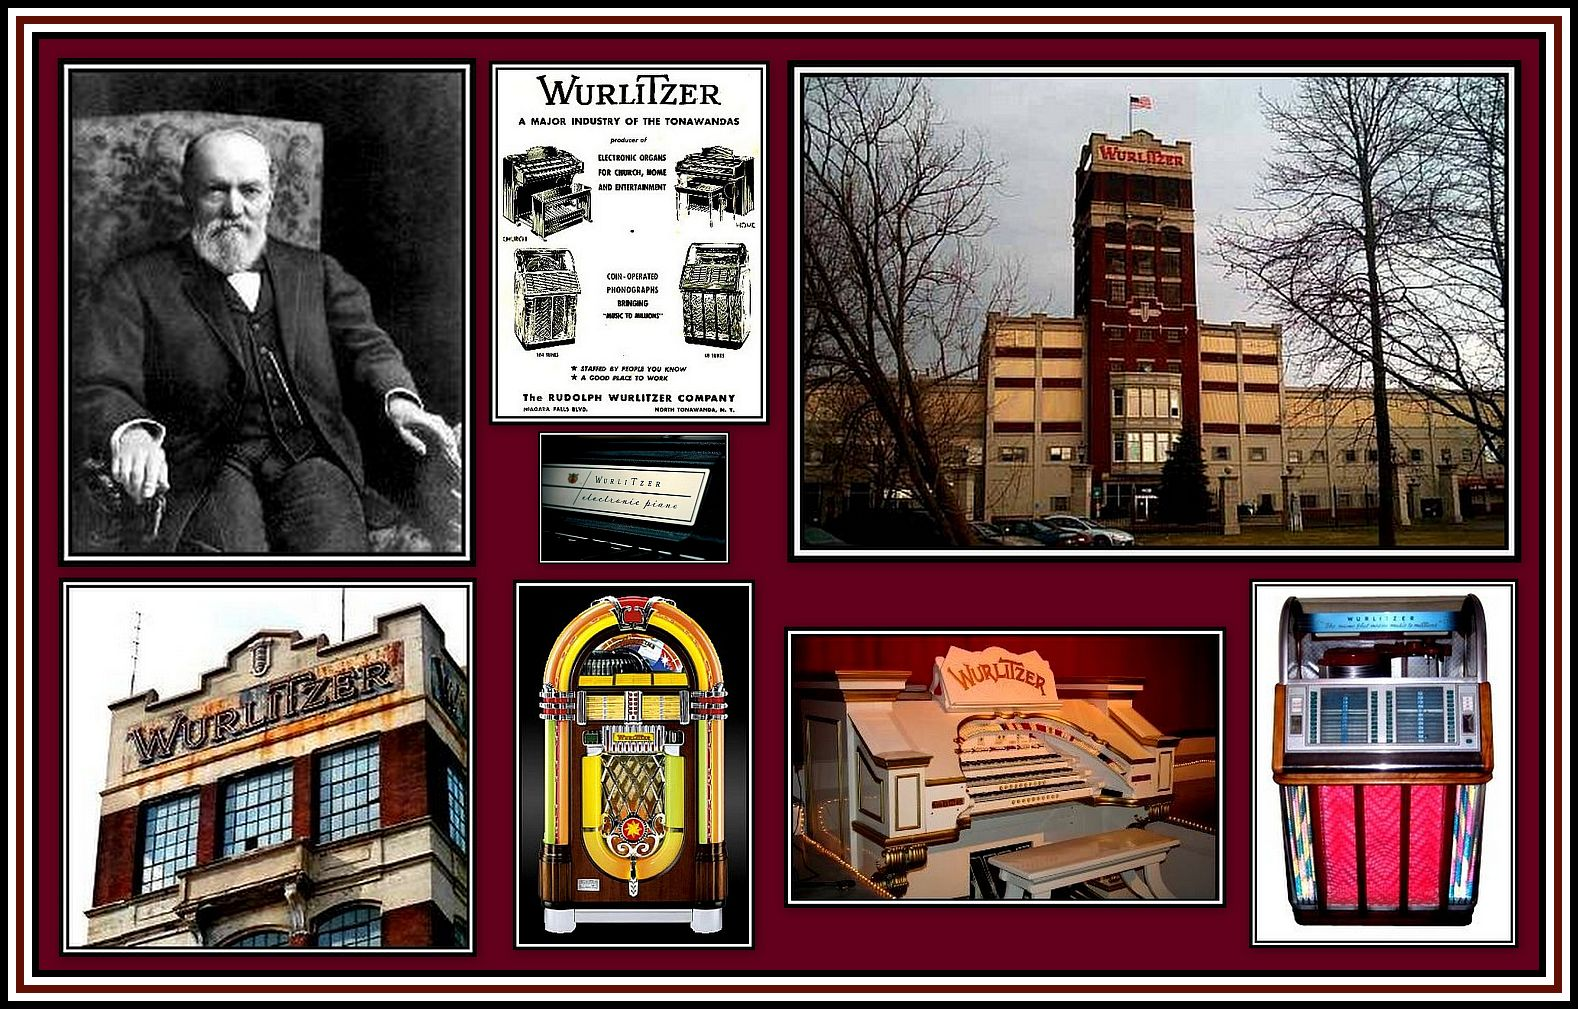 Wurlitzer Collage